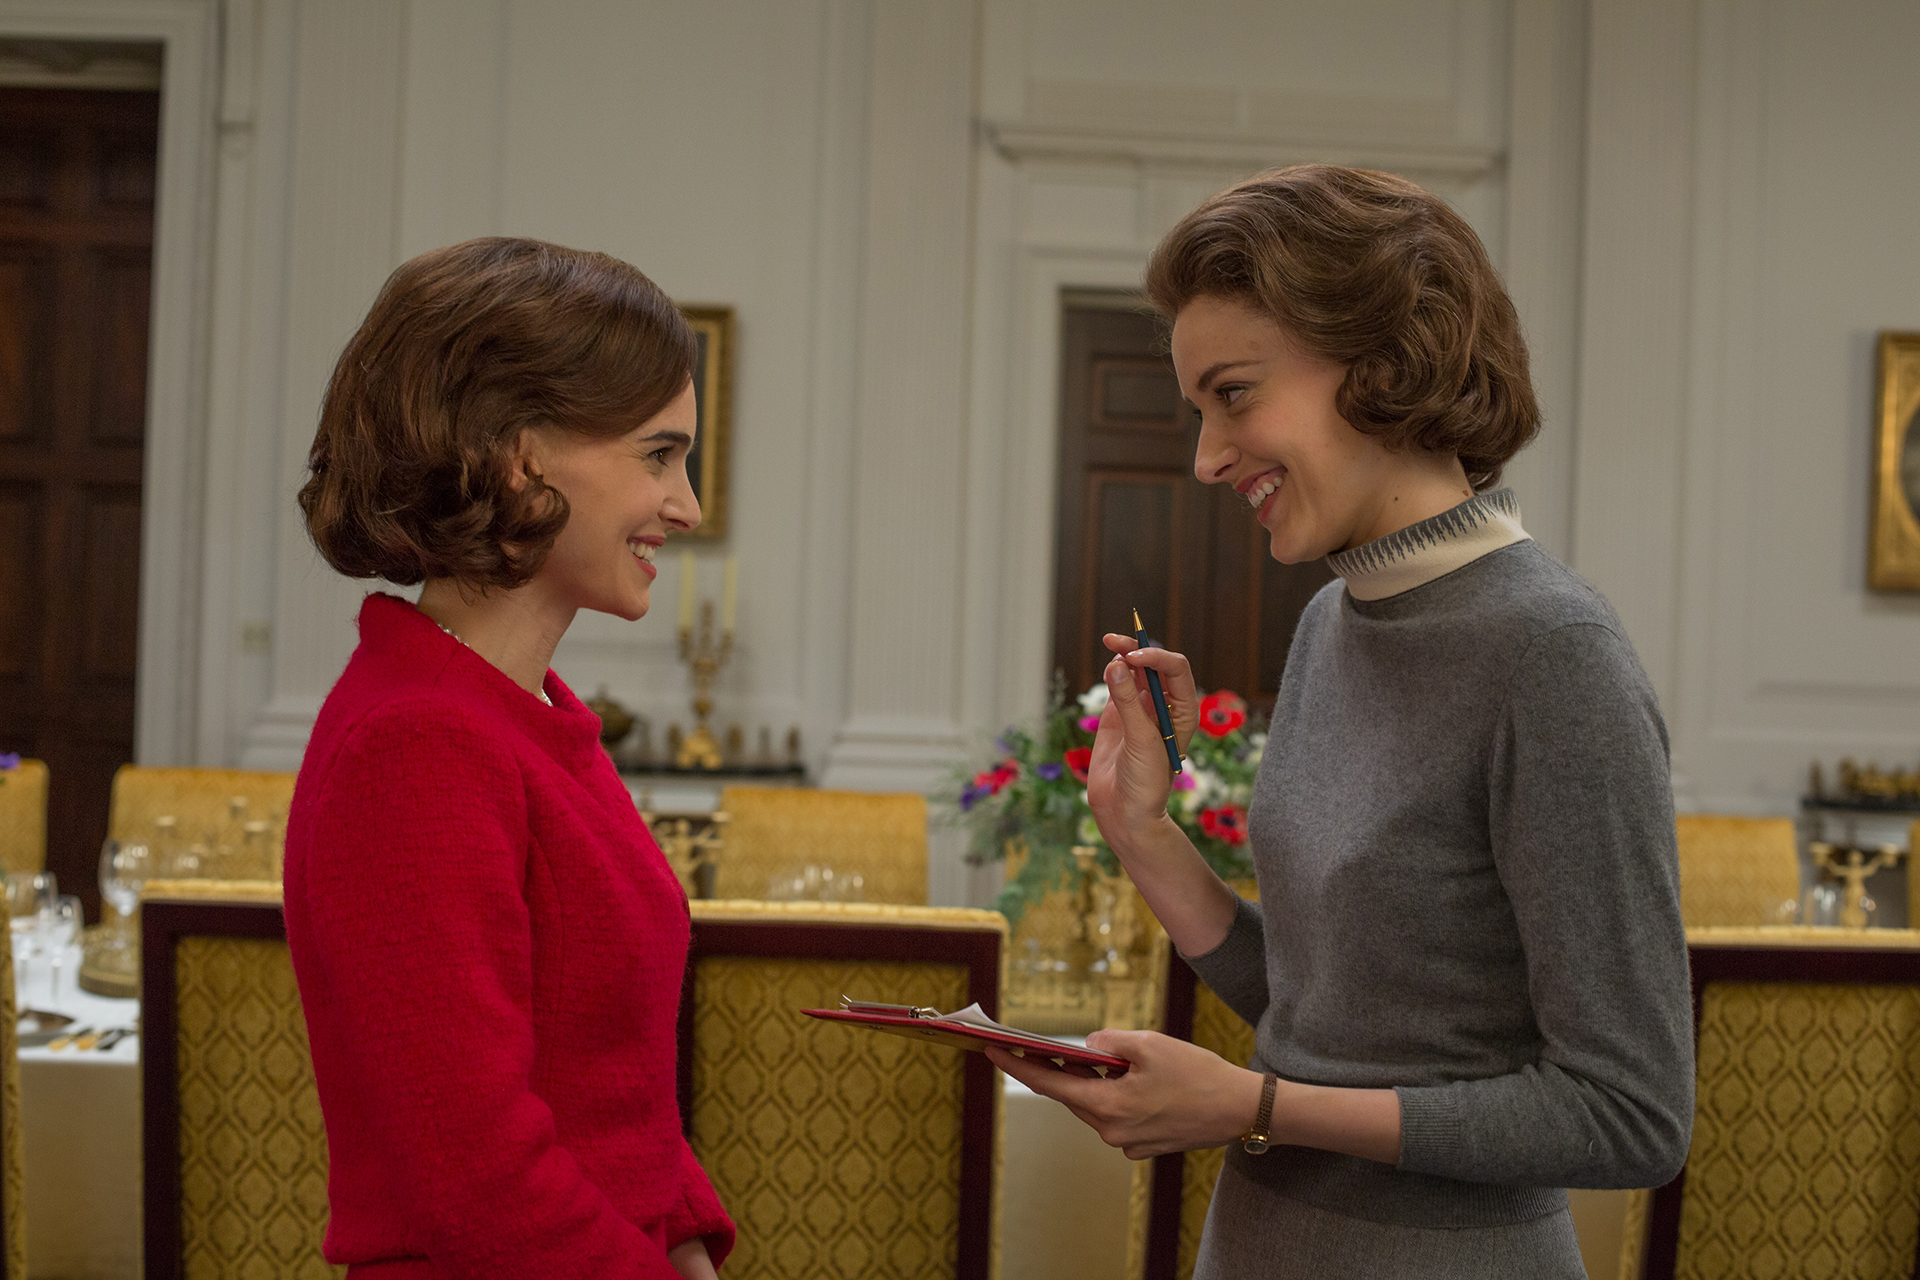 Movie Review: 'Jackie' is a Piercing Portrait of Grief and